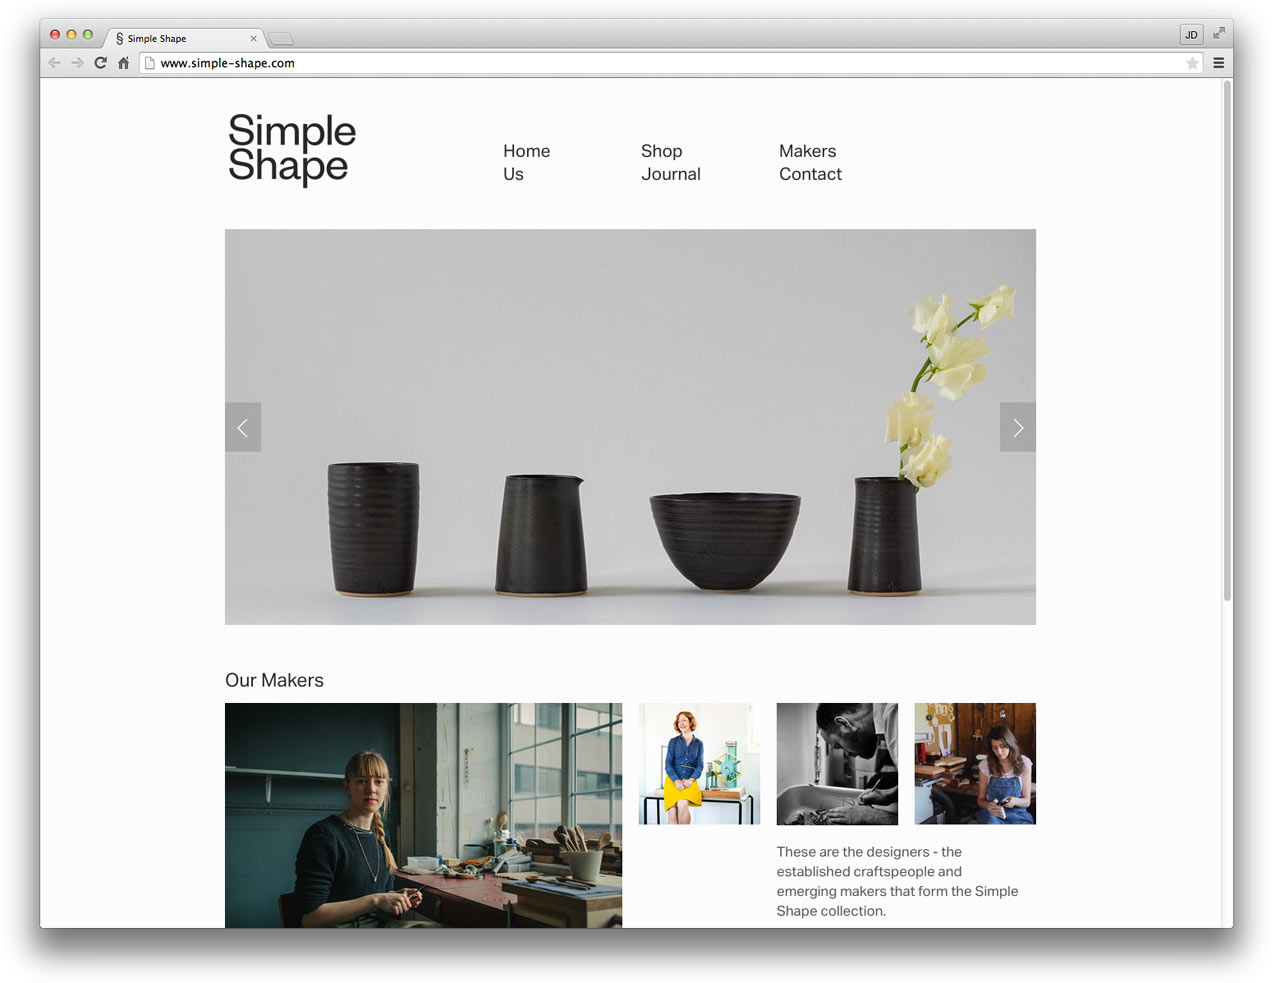 WellDesigned Squarespace Commerce Sites Design Milk - Best squarespace template for photographers